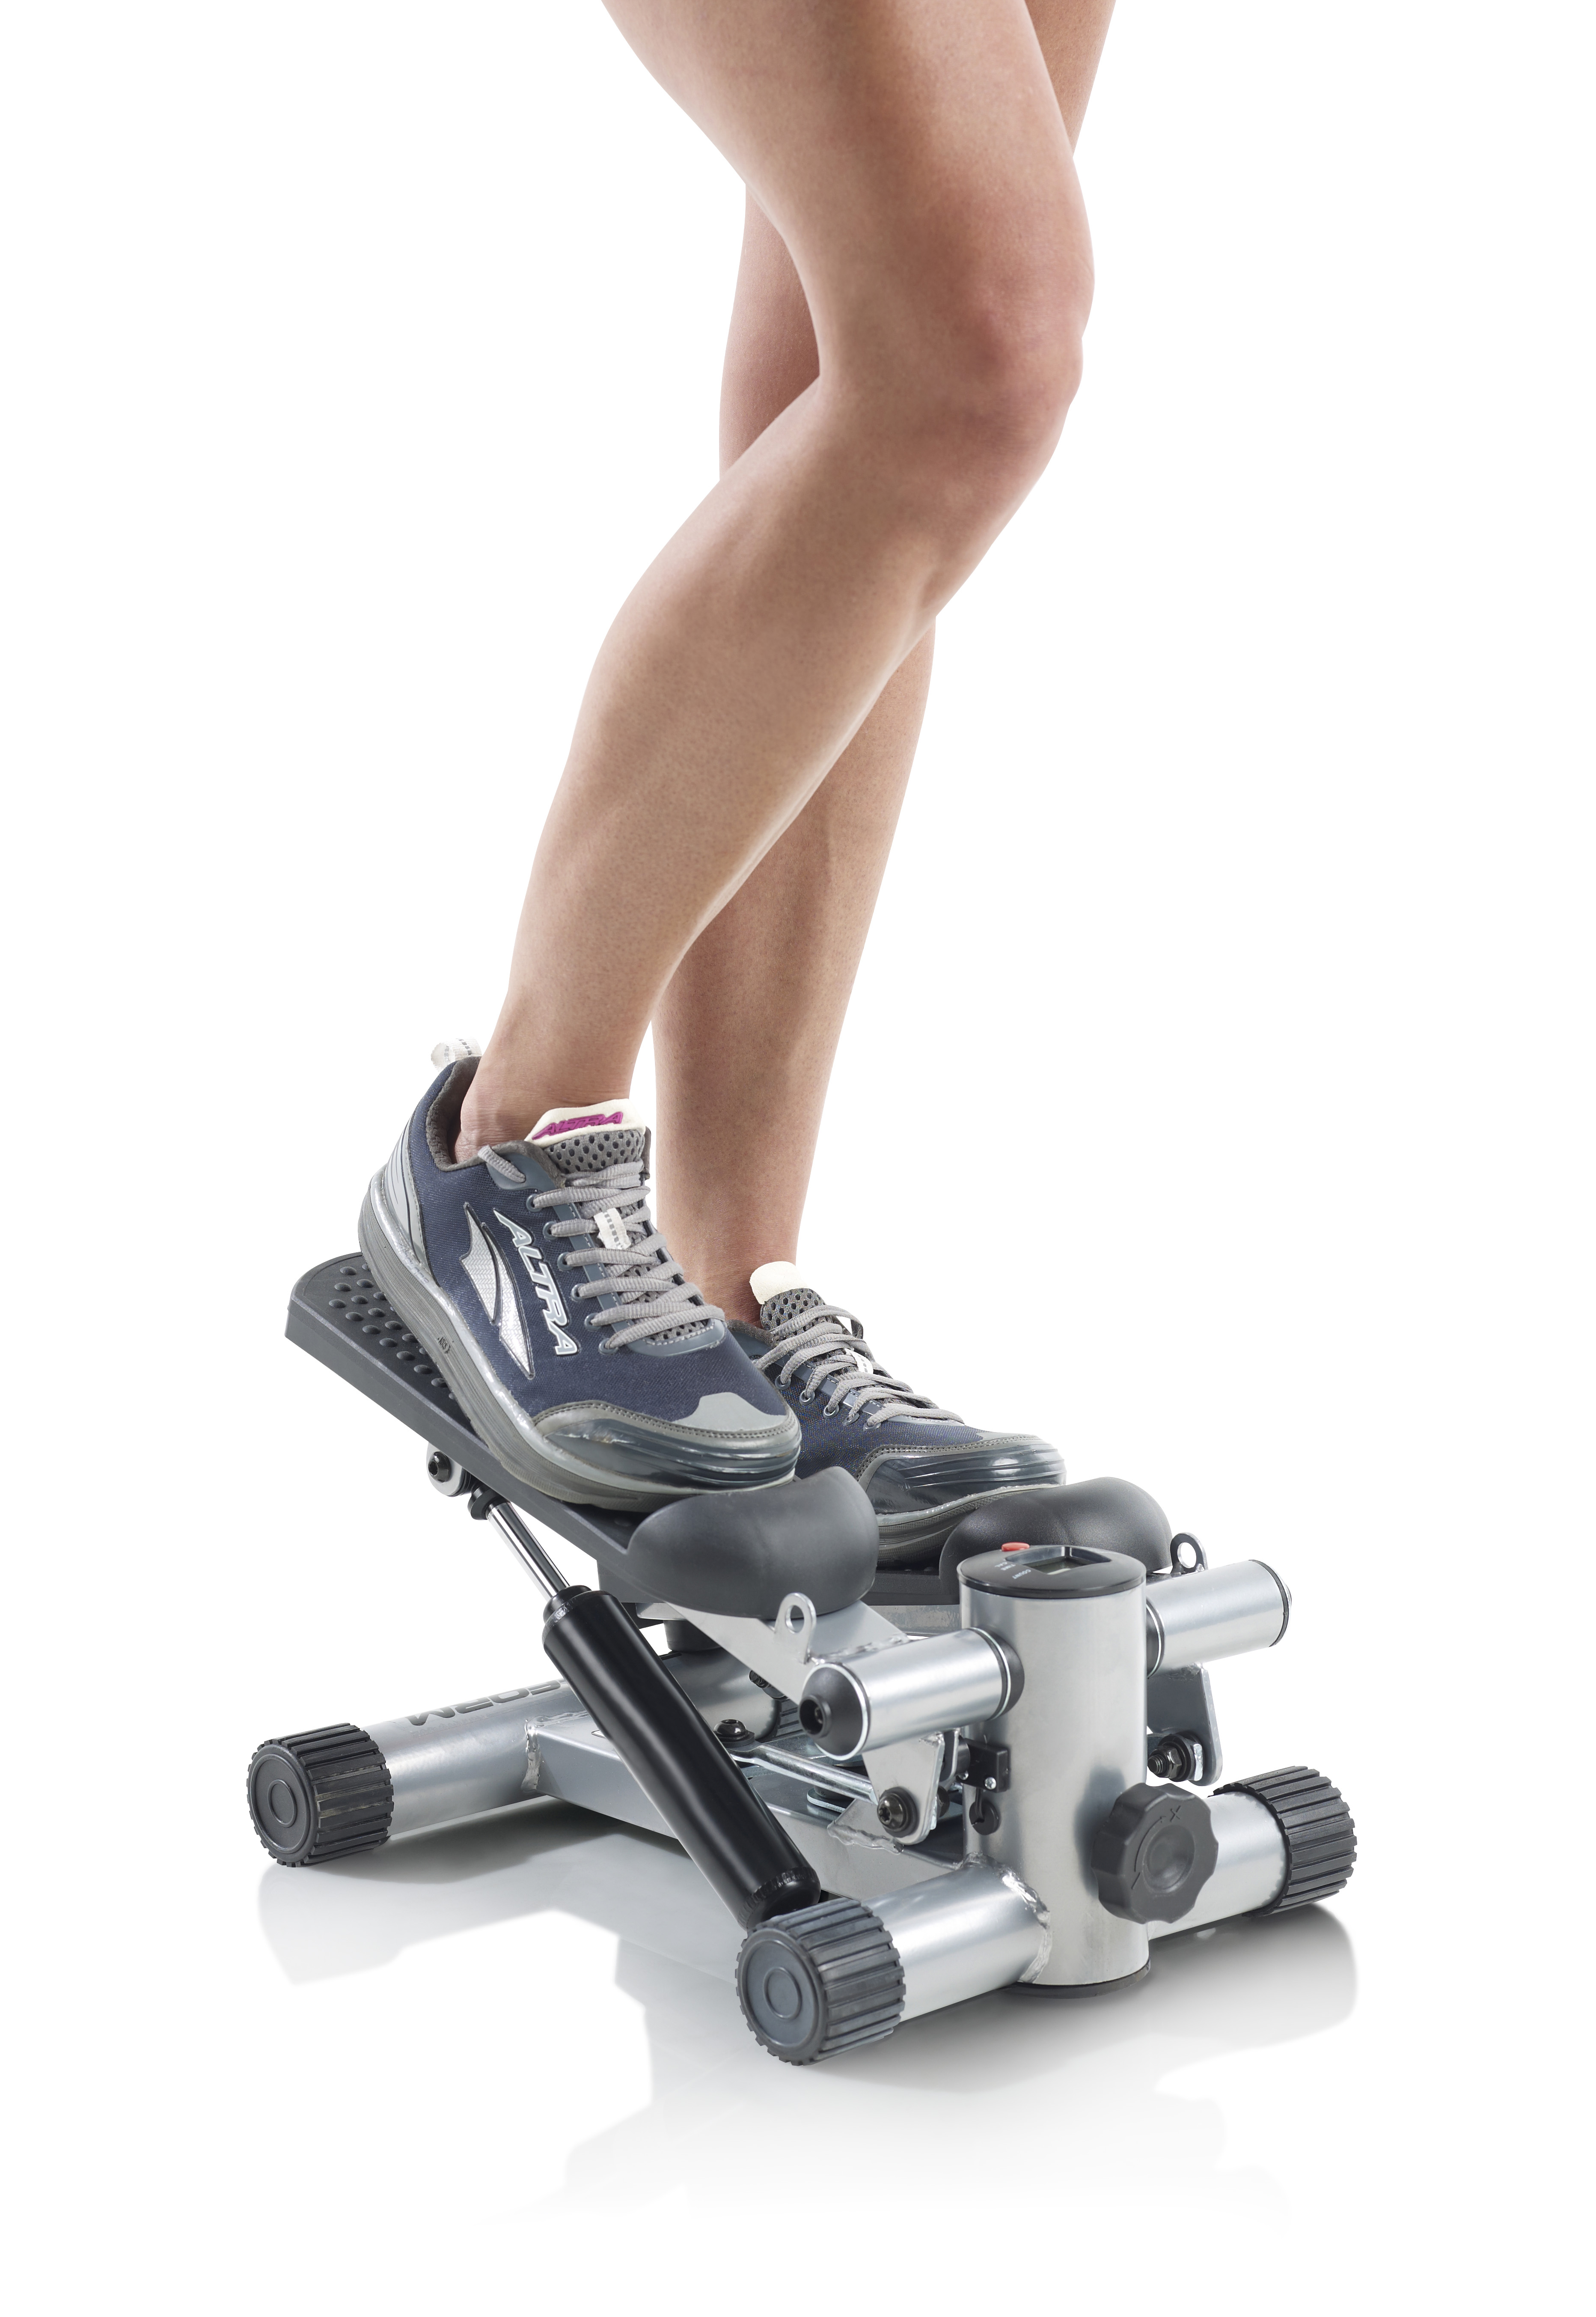 ProForm Mini Stepper Workout System With Resistance Cords PFMS 14 for sale online